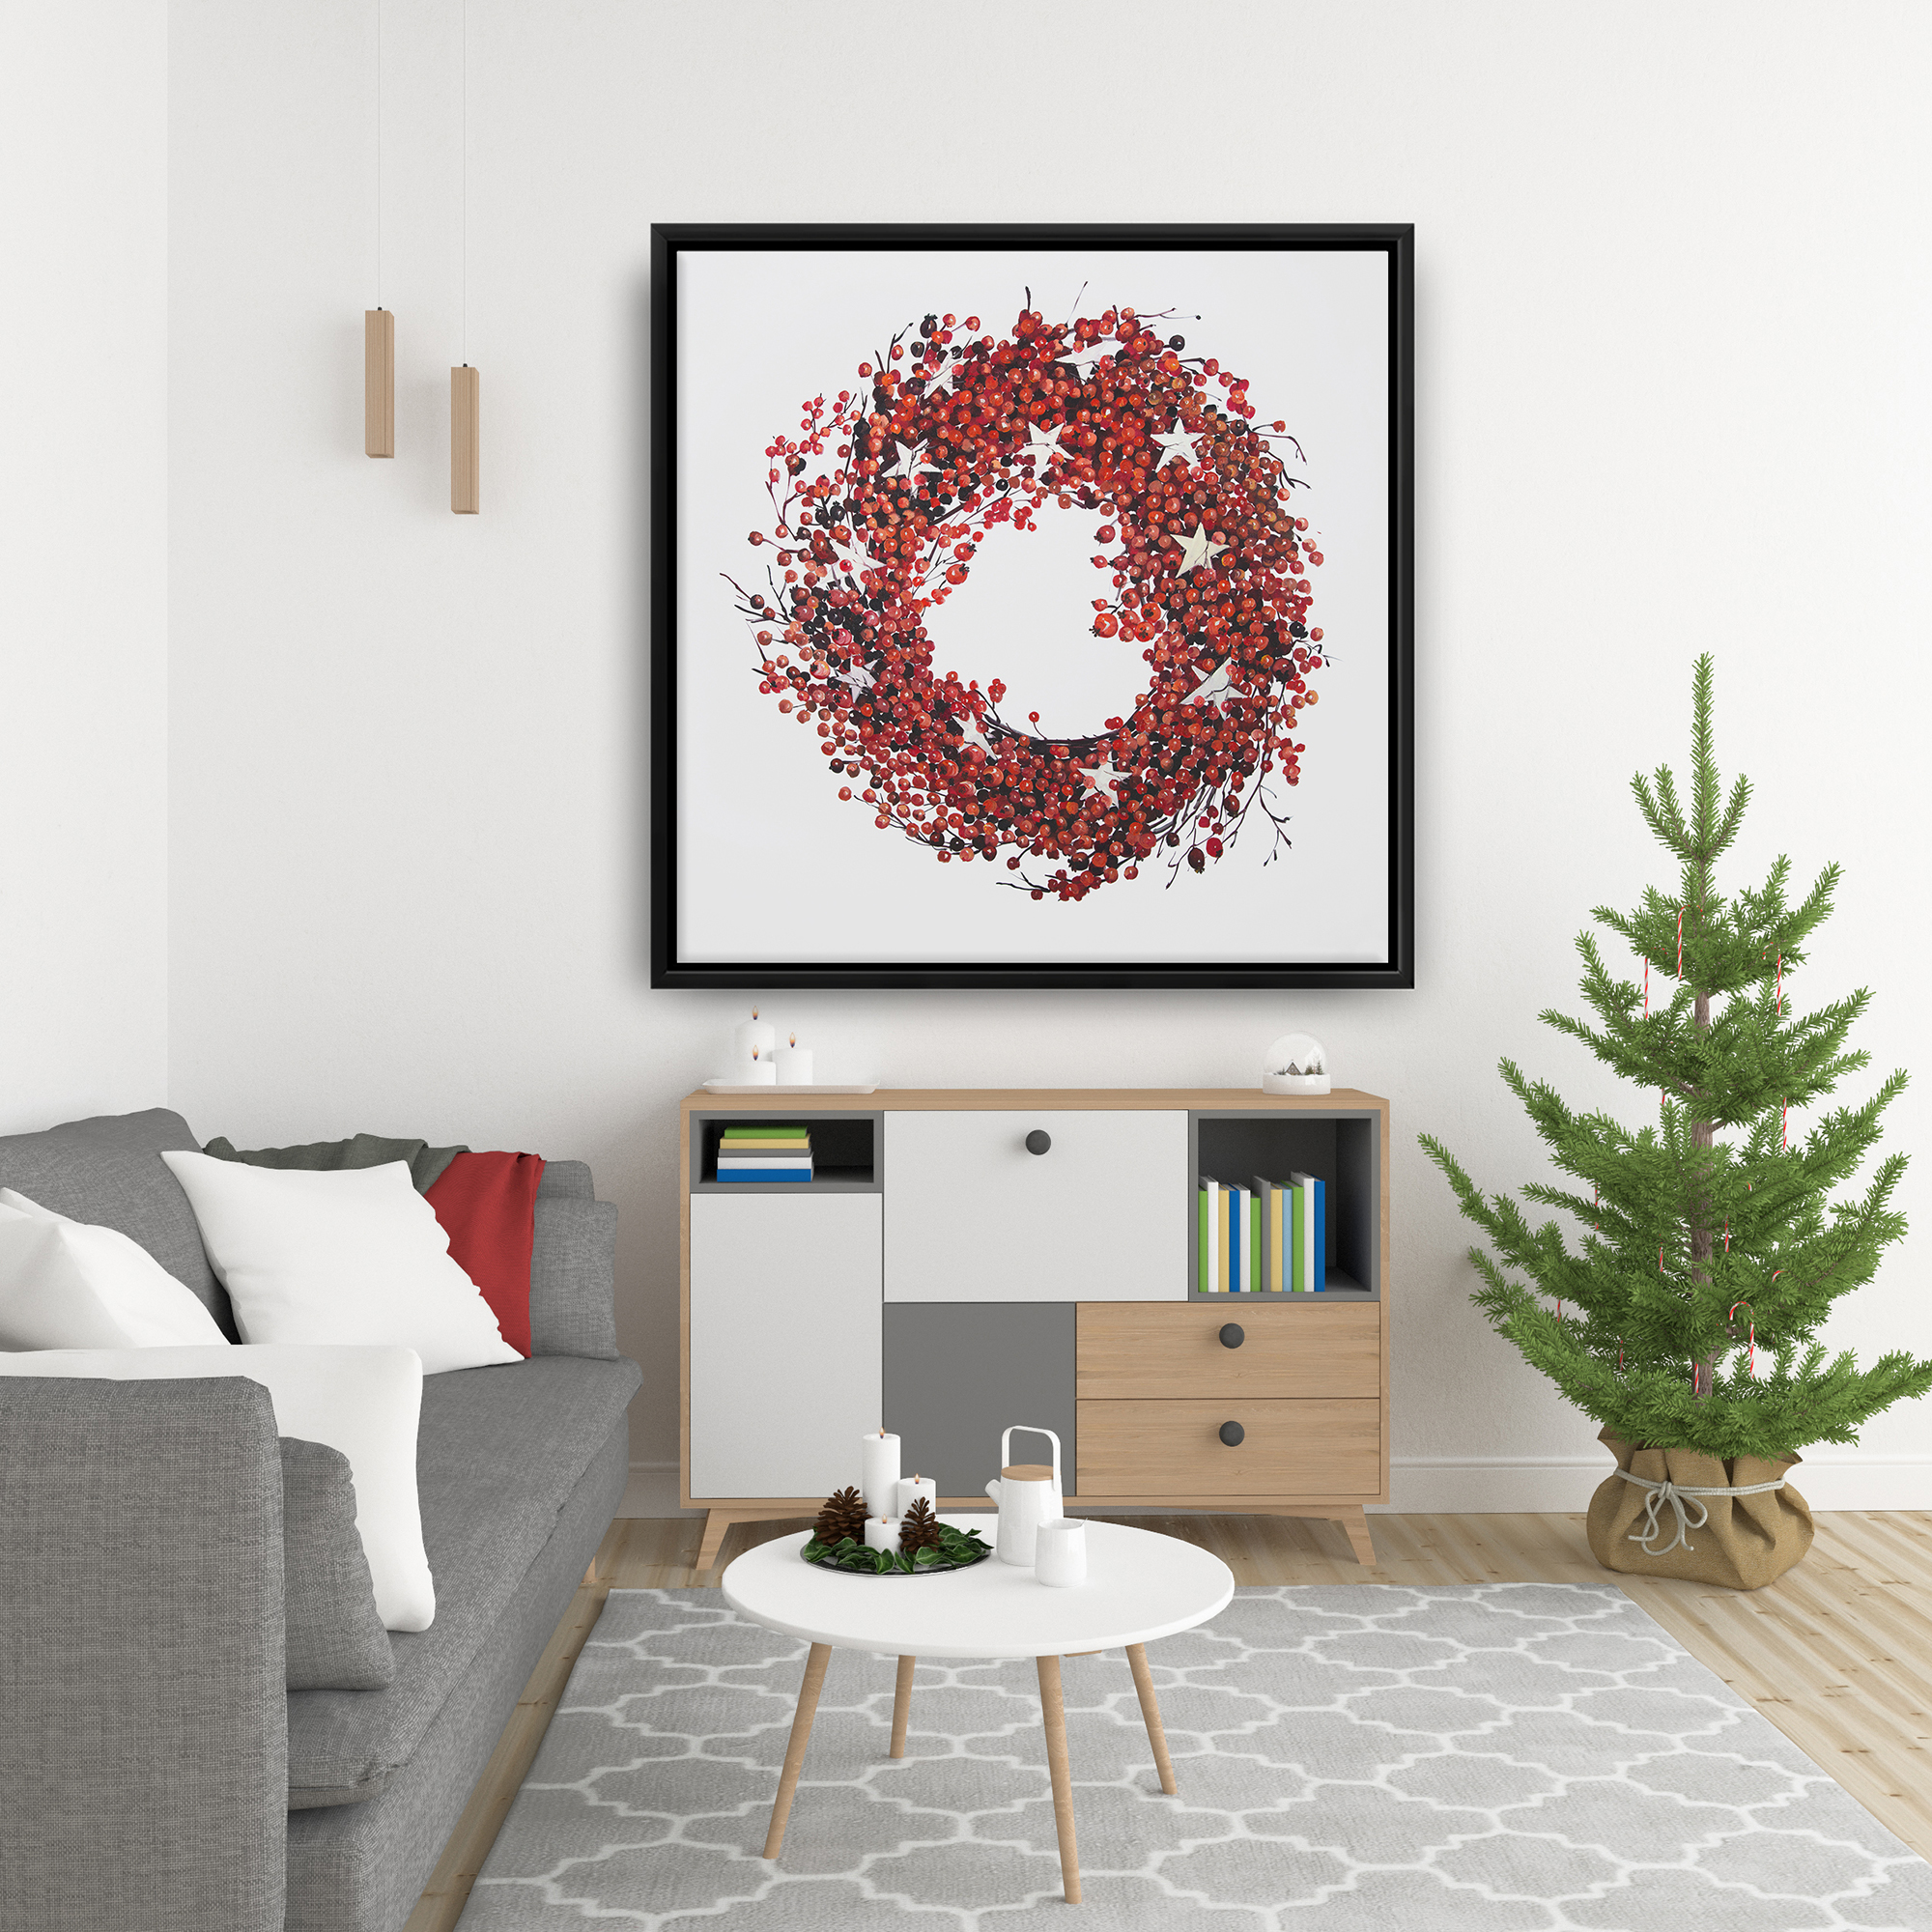 Framed 36 x 36 - Red berry wreath